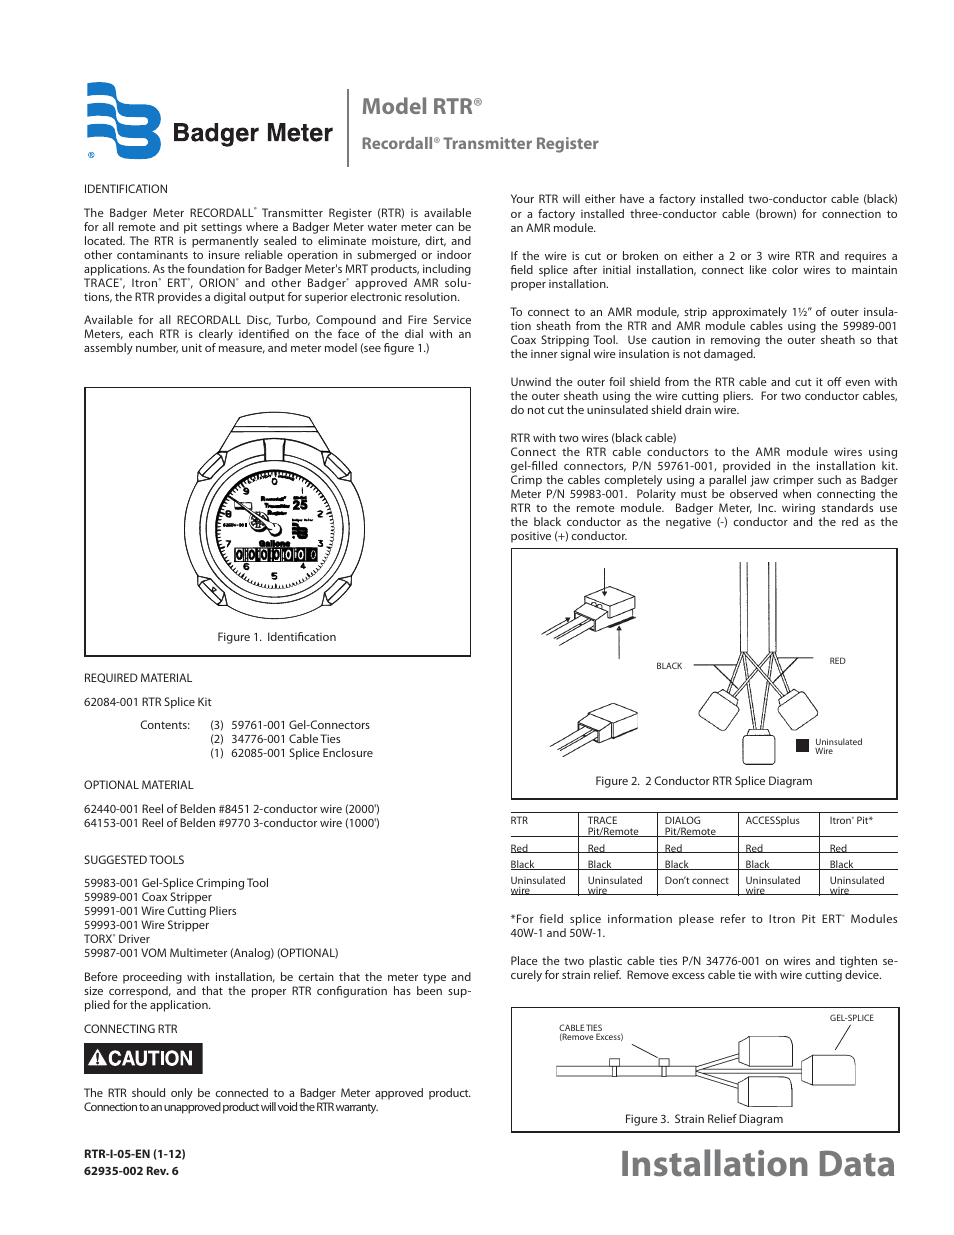 hight resolution of badger meter water conditioning user manual 2 pages also for recordall transmitter register